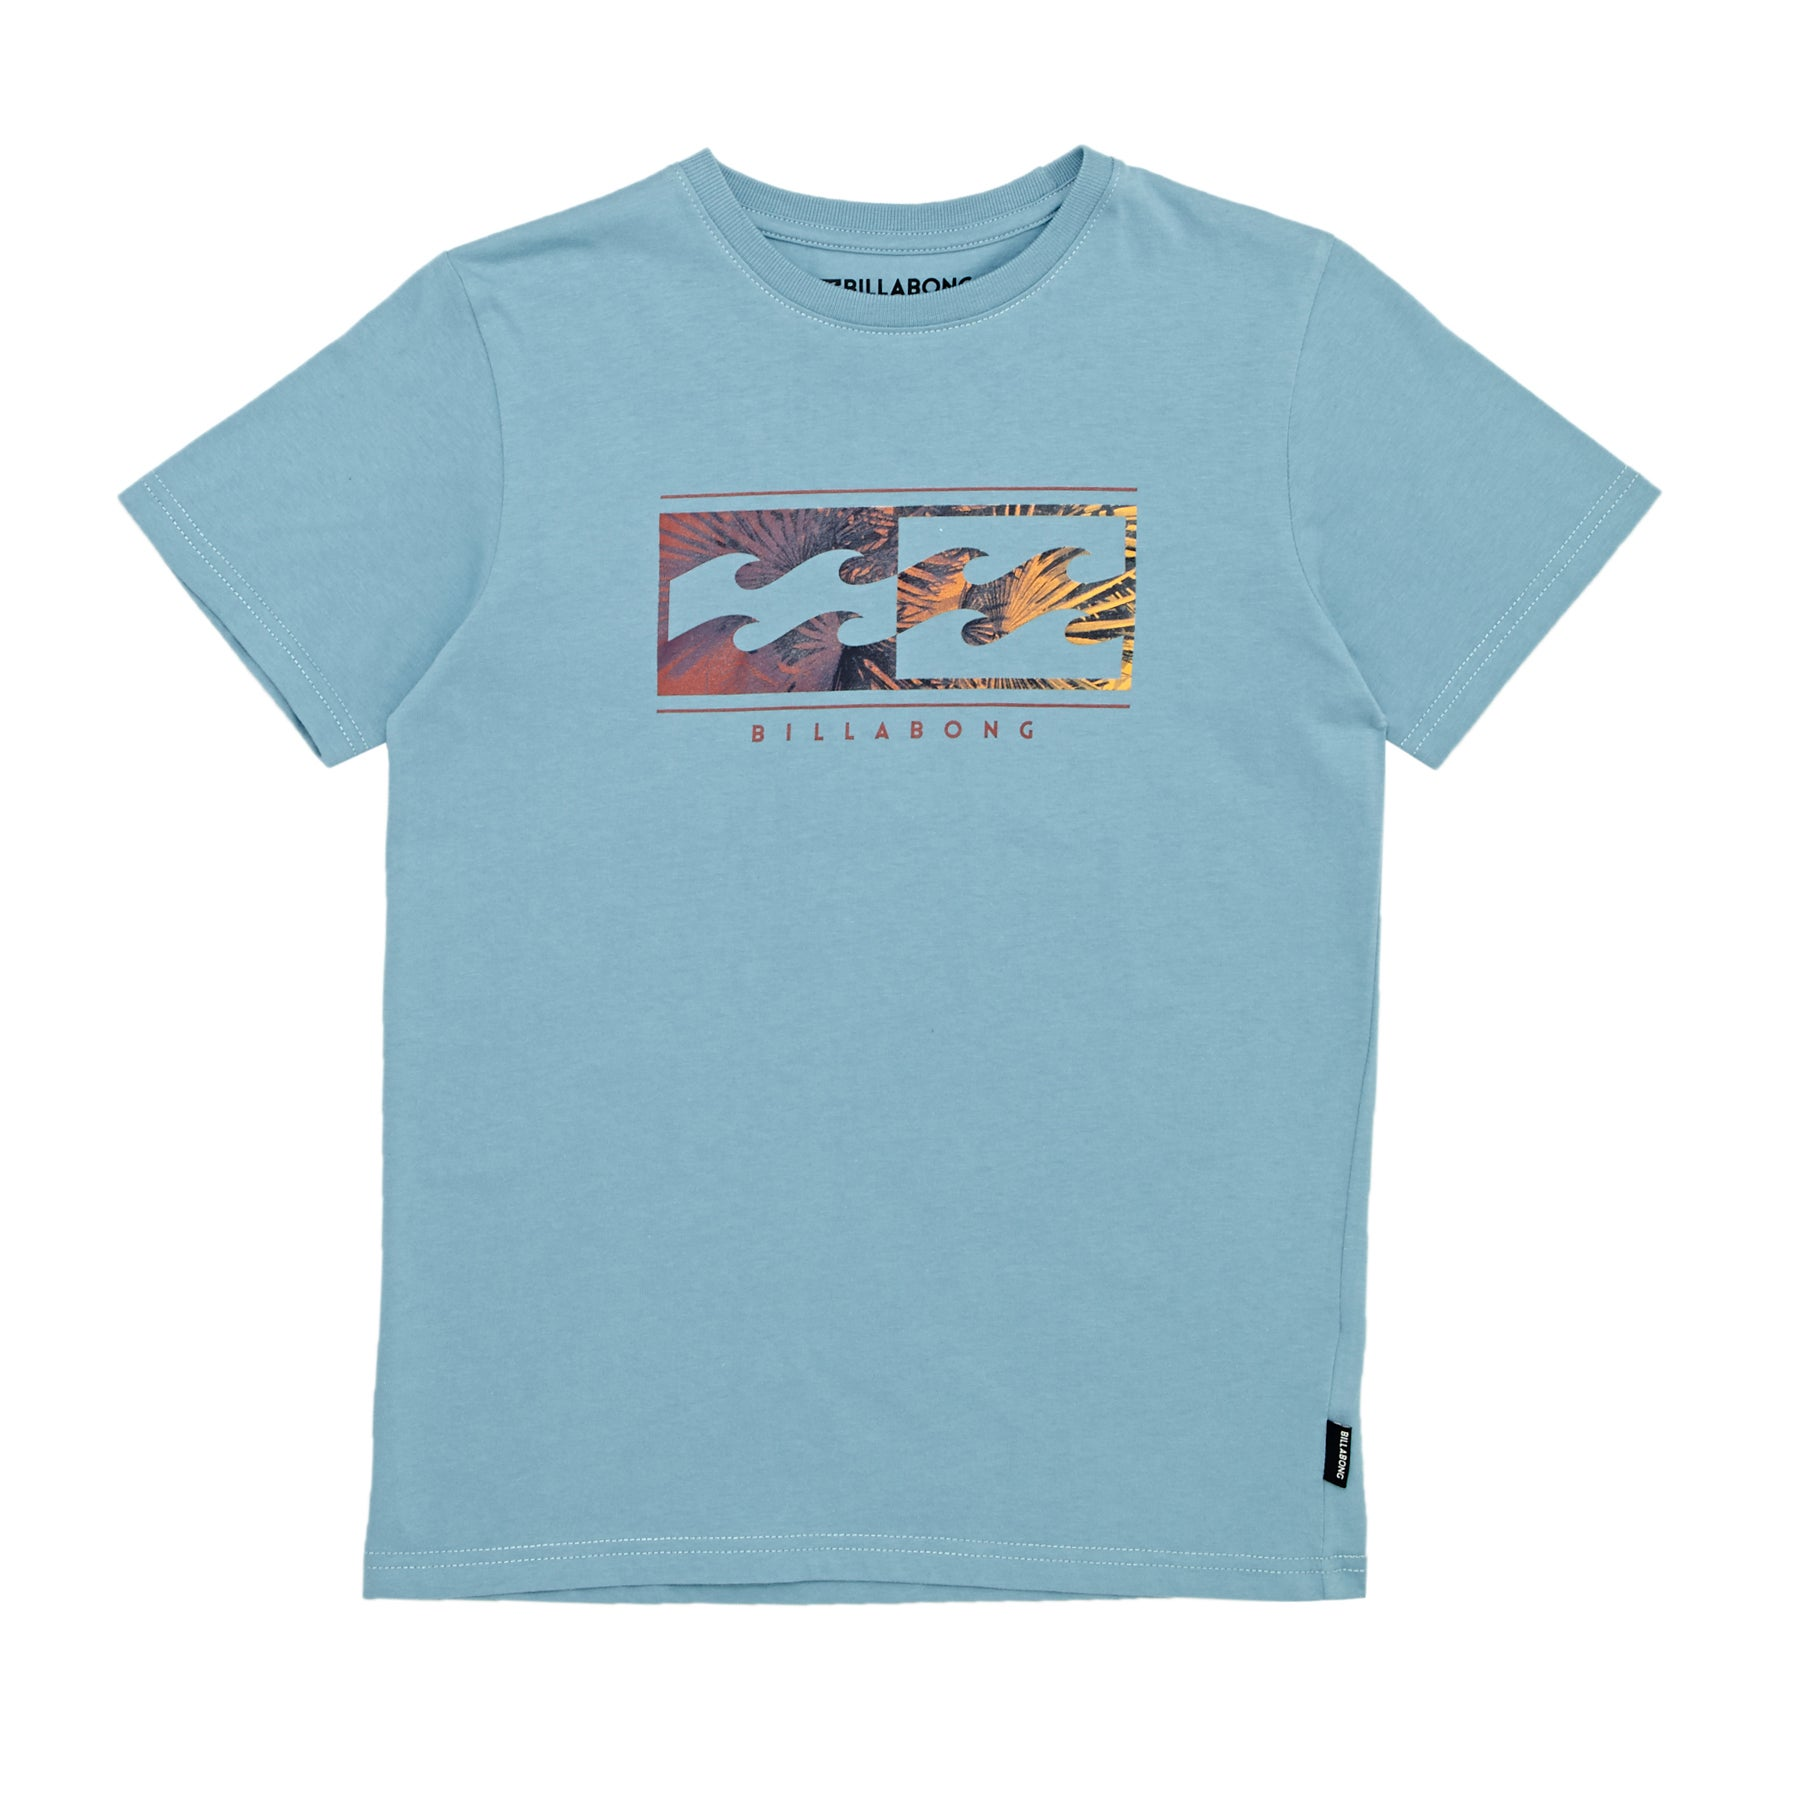 Camiseta de manga corta Boys Billabong Inversed - Aqua Blue